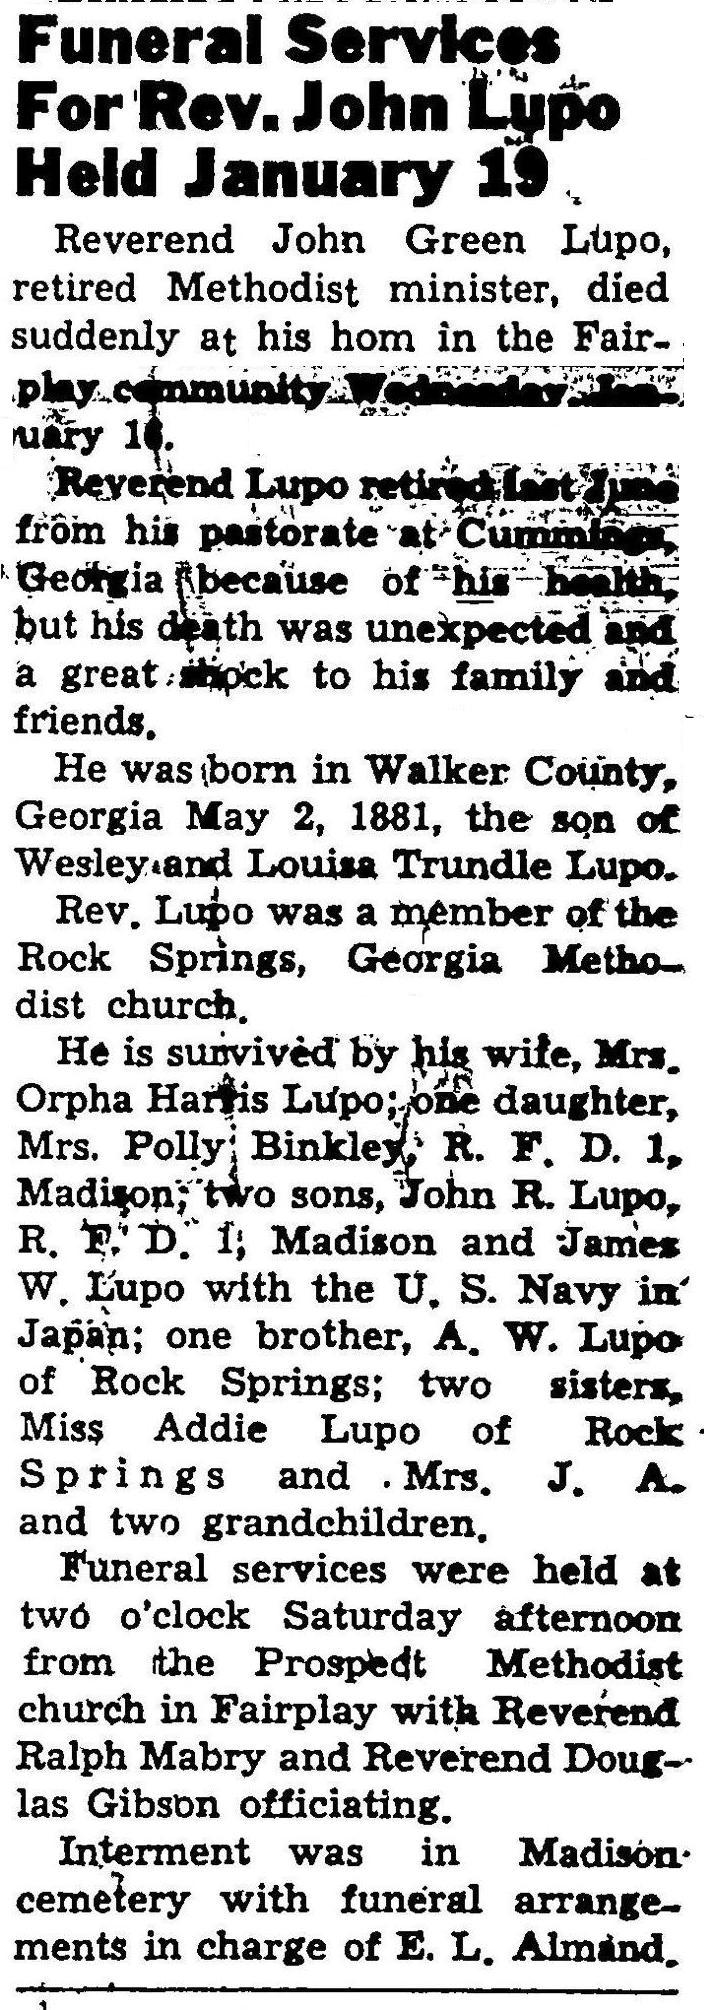 lupo_johngreenrev_1952-obituary.jpeg